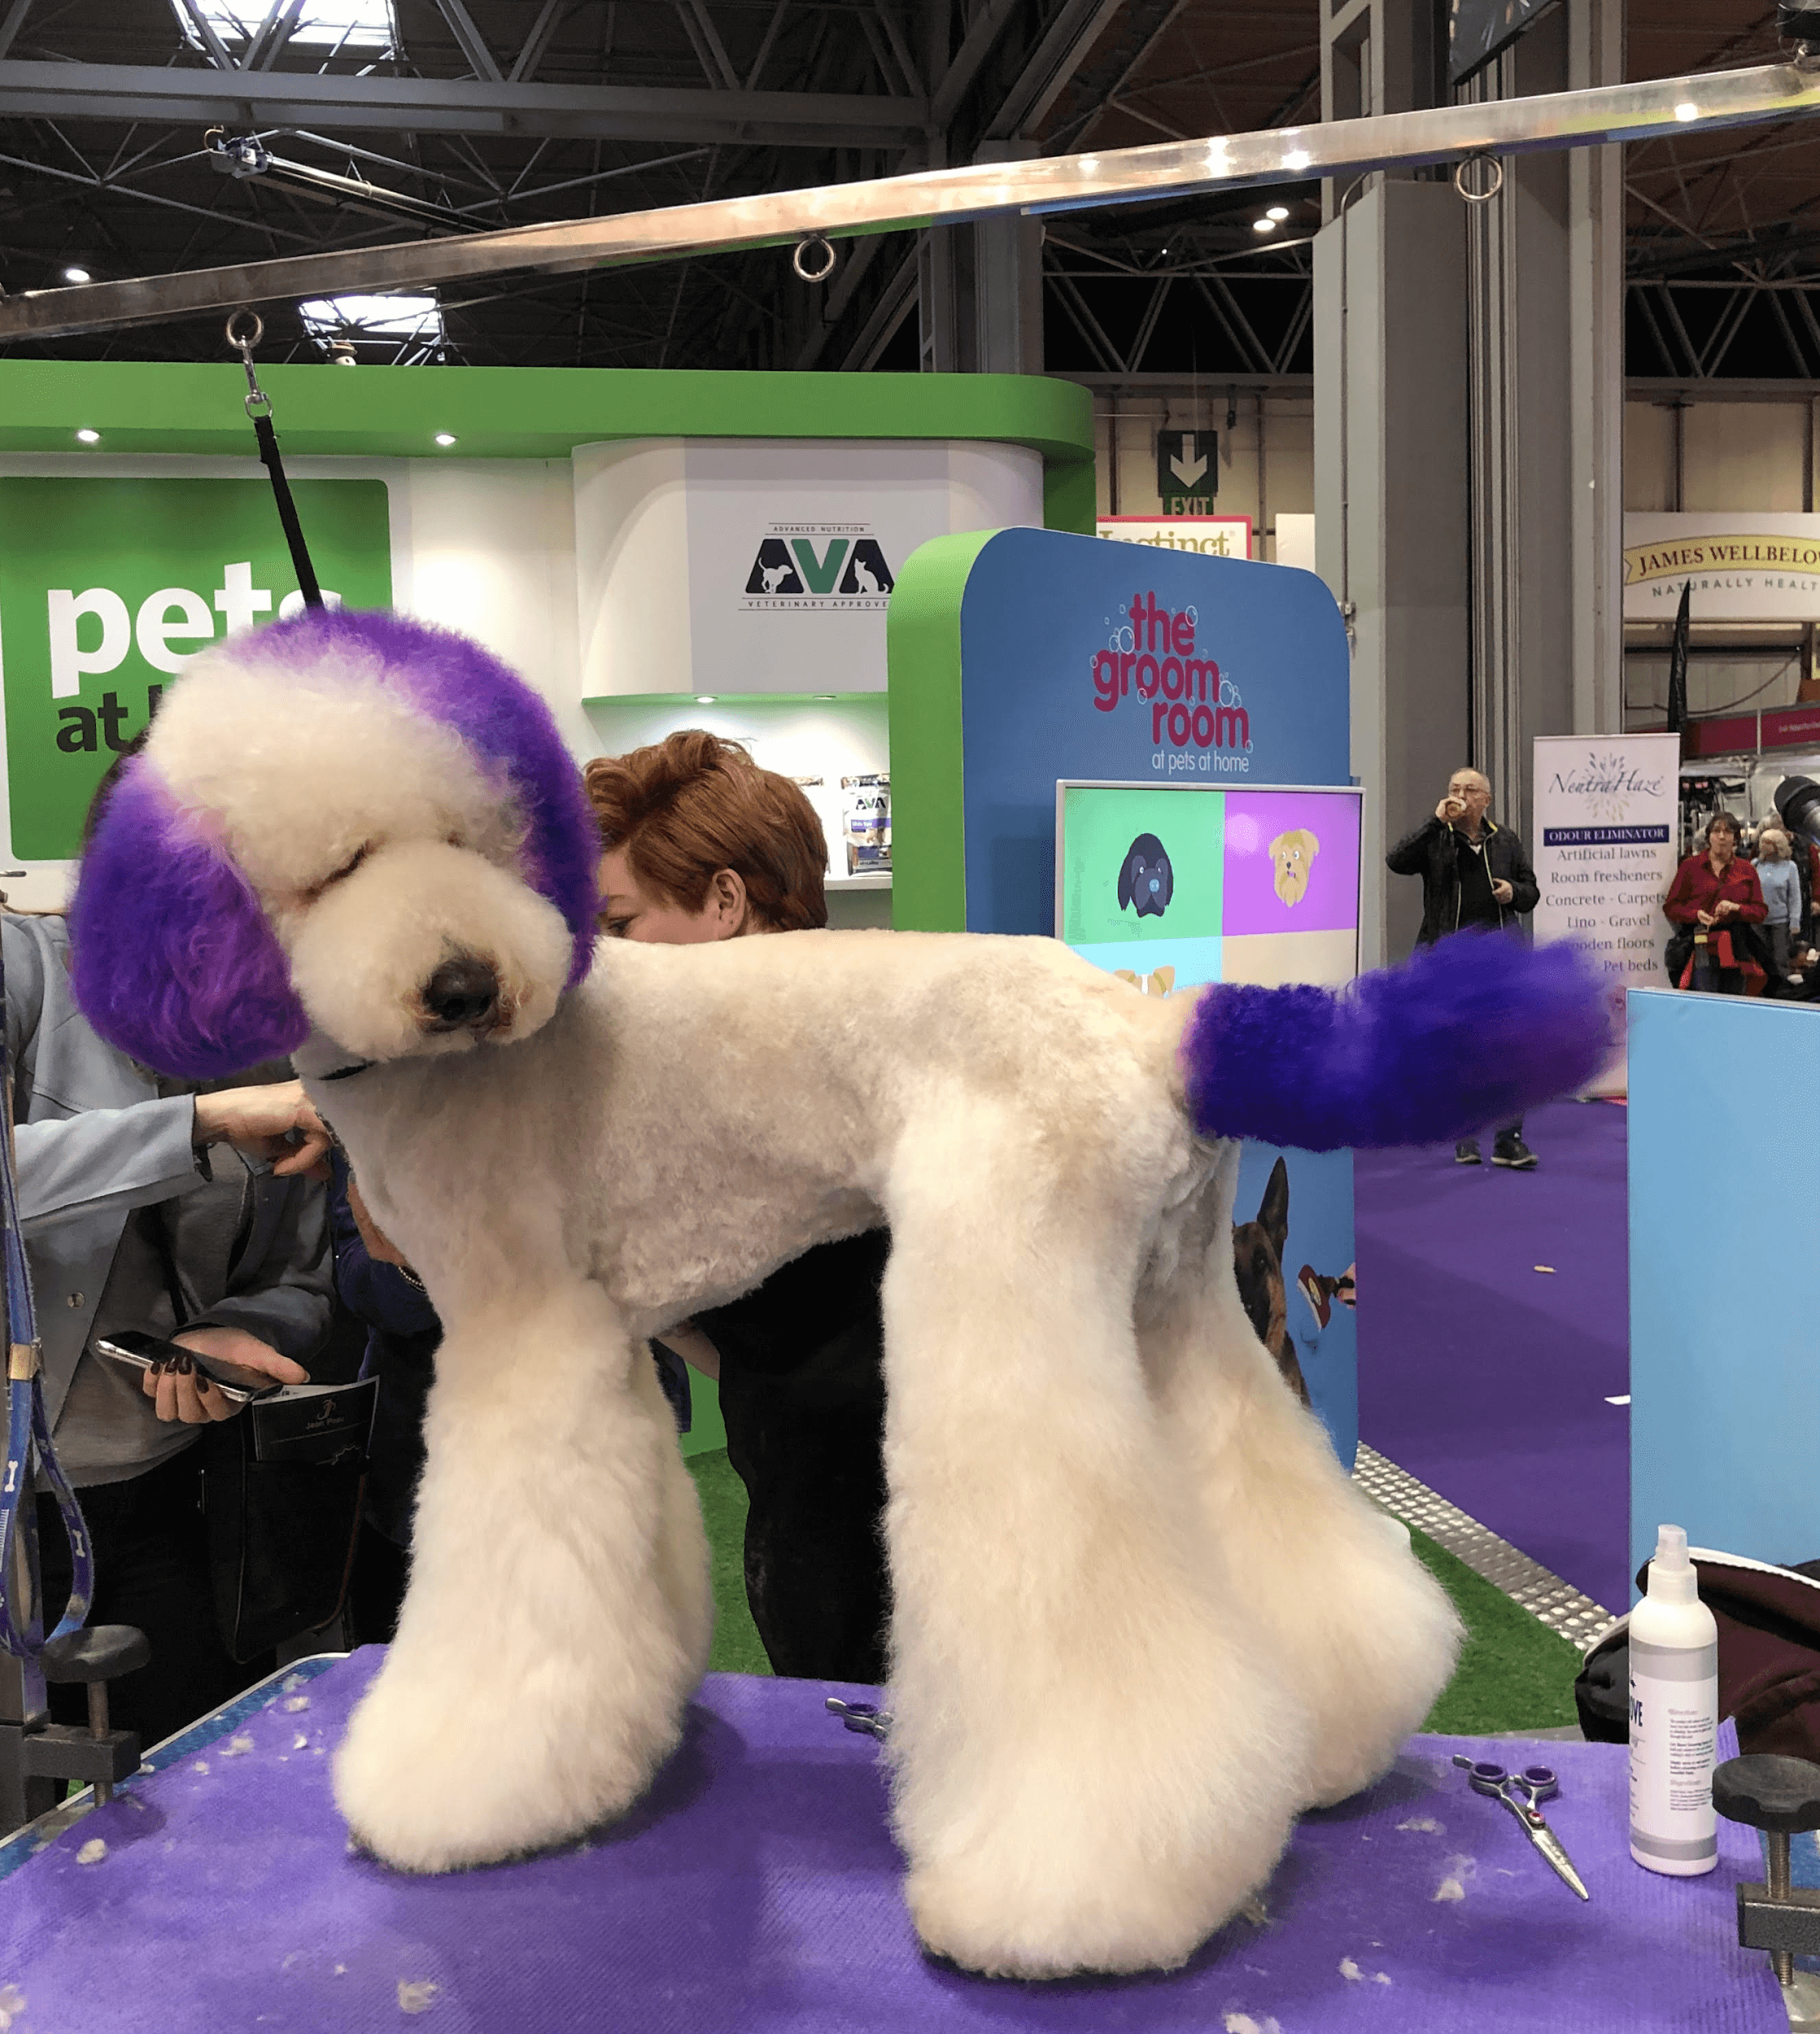 a dog stands out for having its purple hair color after grooming